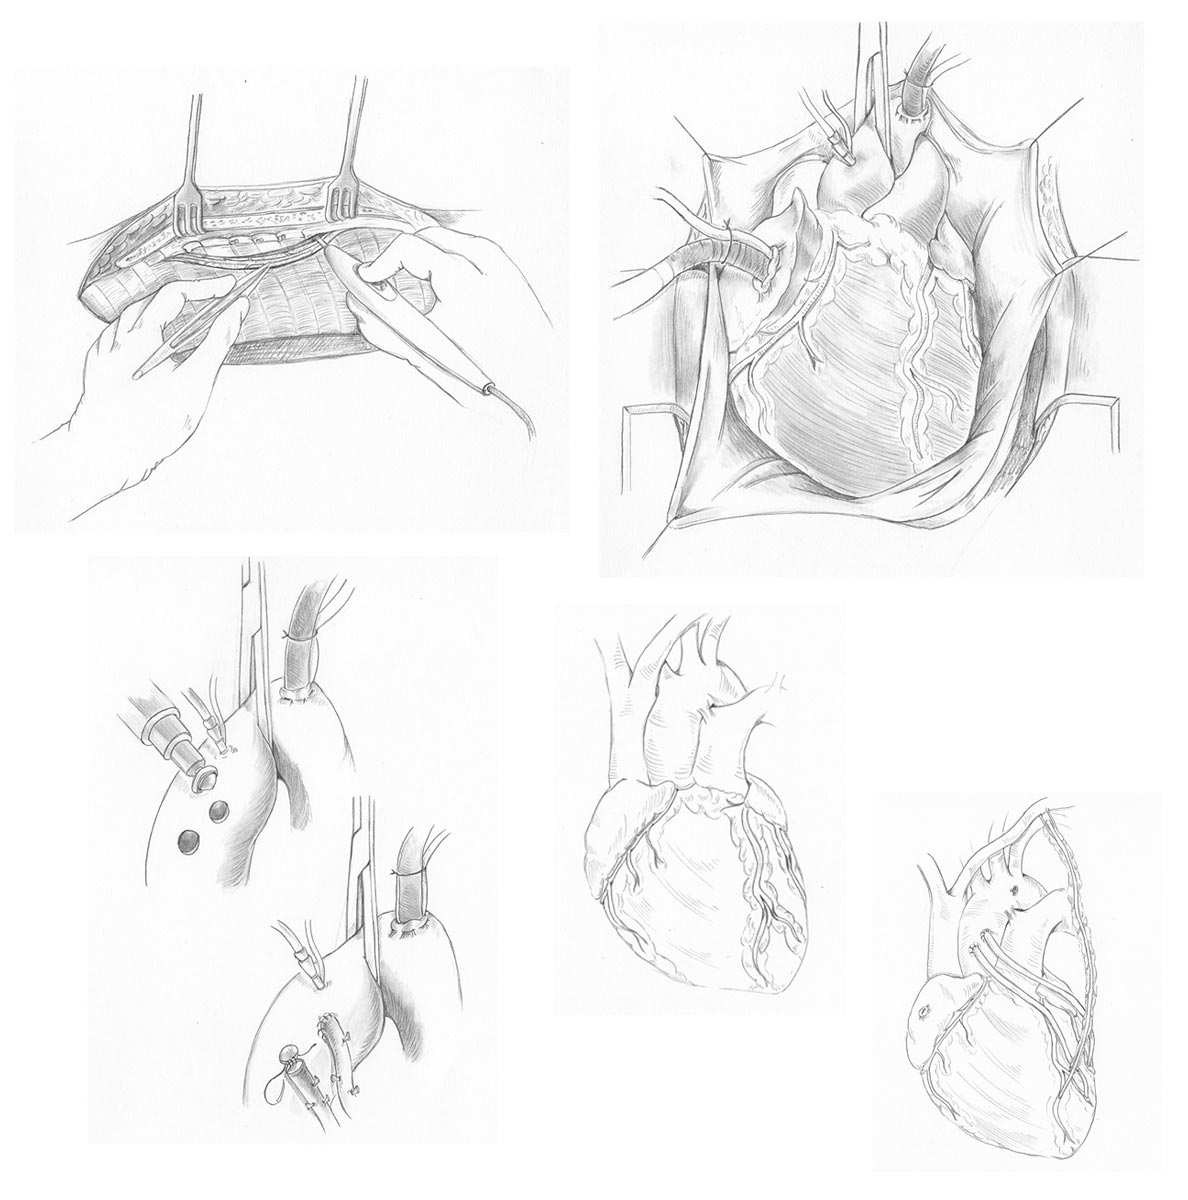 Initial Tone Sketches - Using OR sketches and additional research, completed a set of tonal studies of each important step in the surgery.